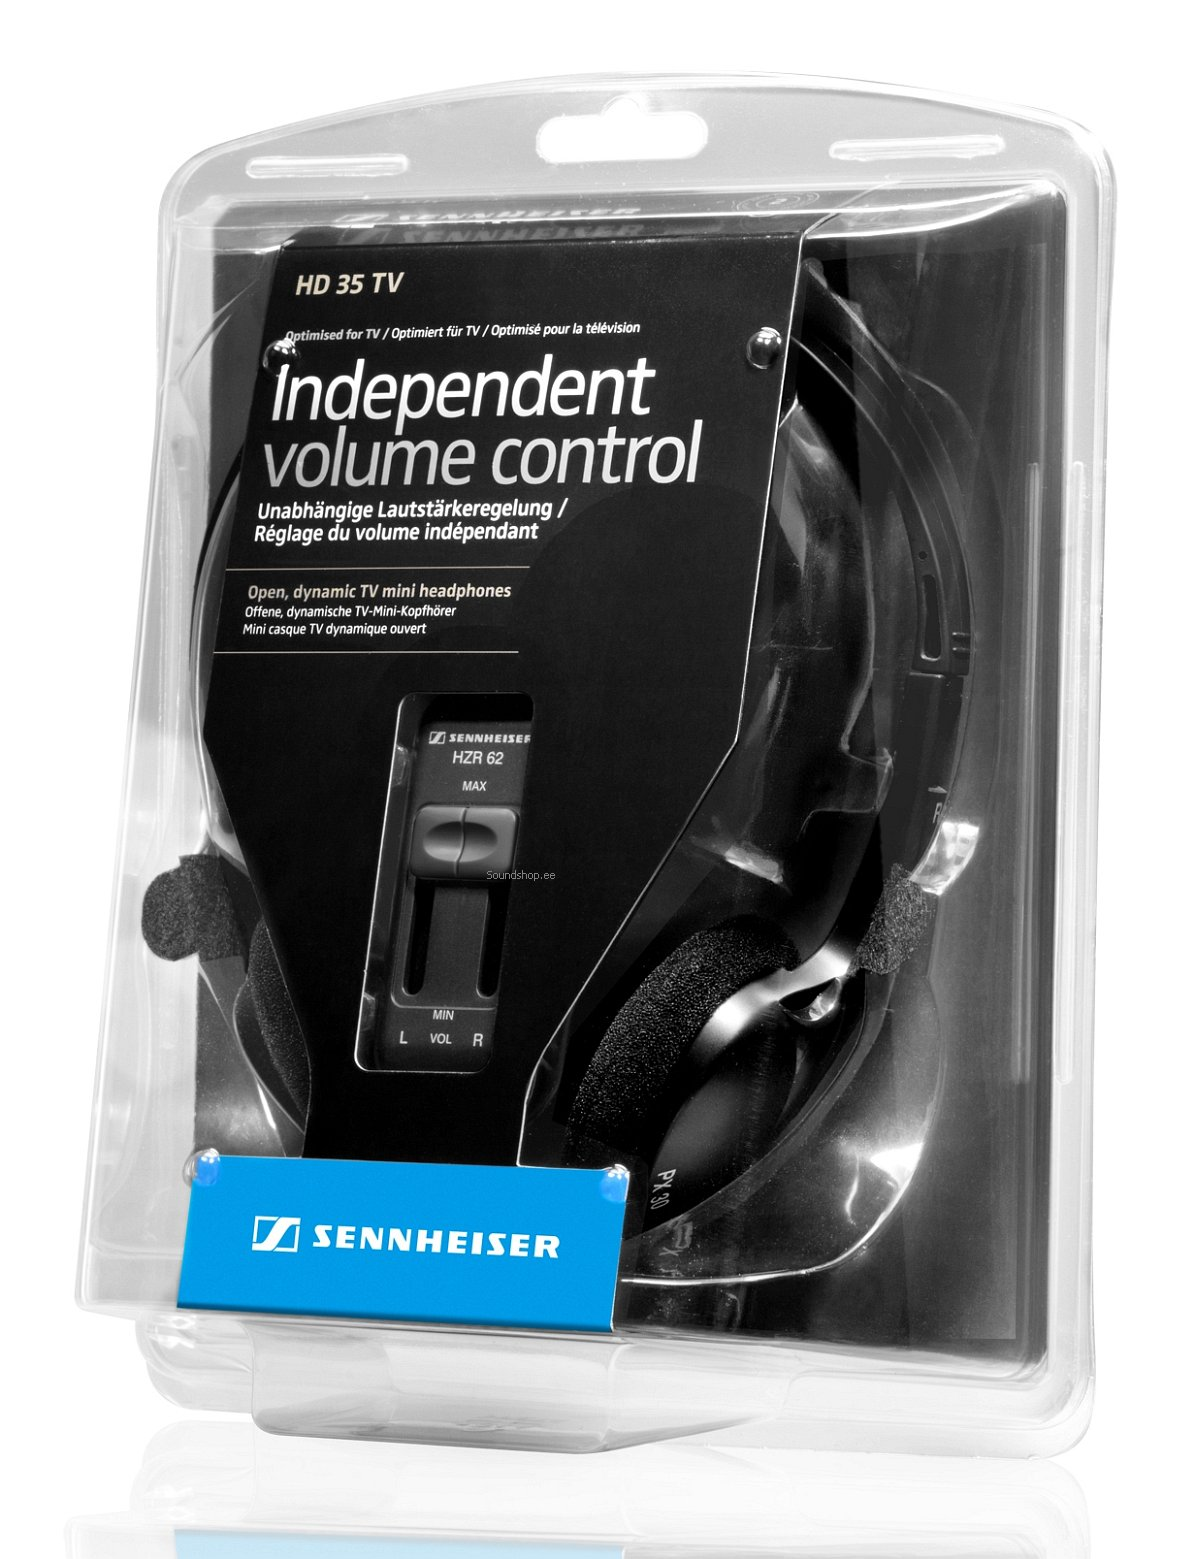 Sennheiser HD 35 TV pilt 3